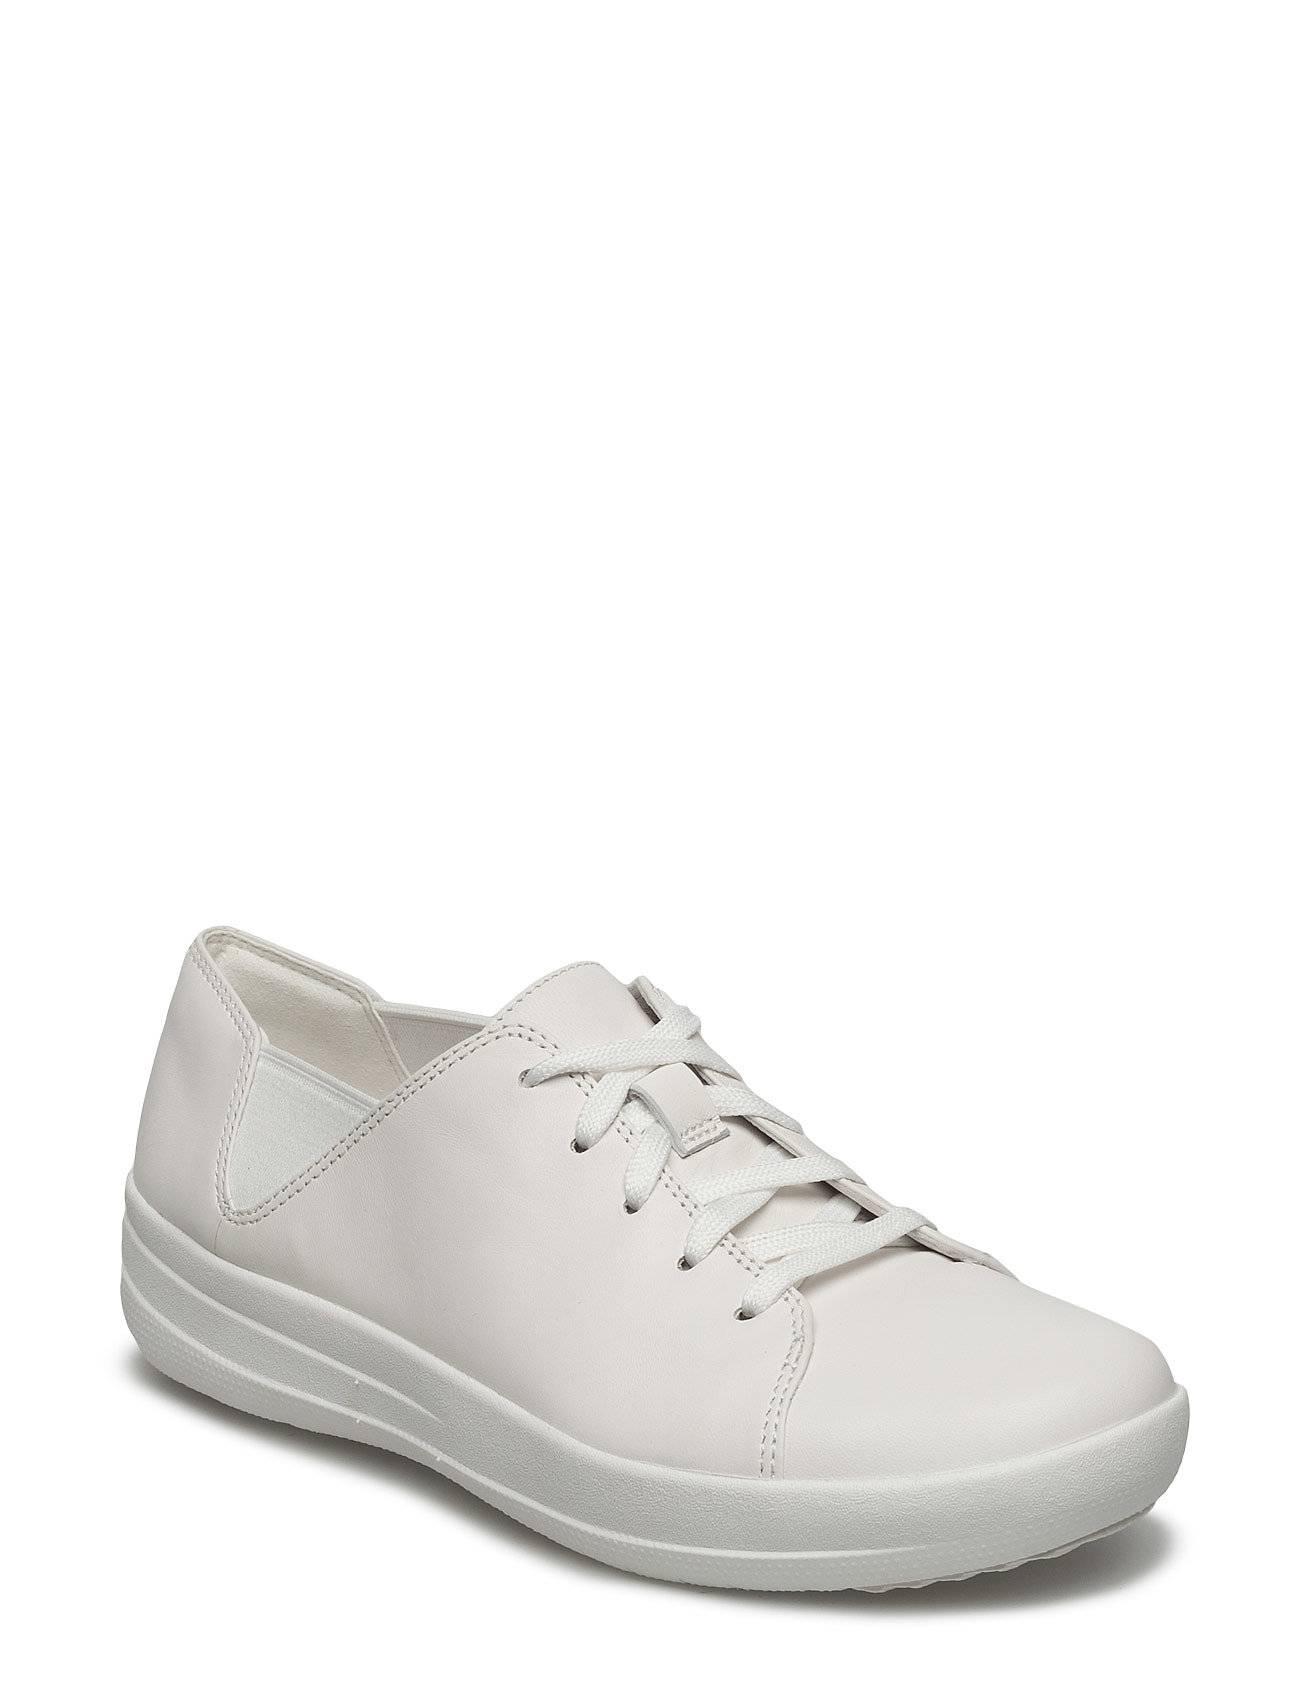 FitFlop Sporty-Pop Lace Up